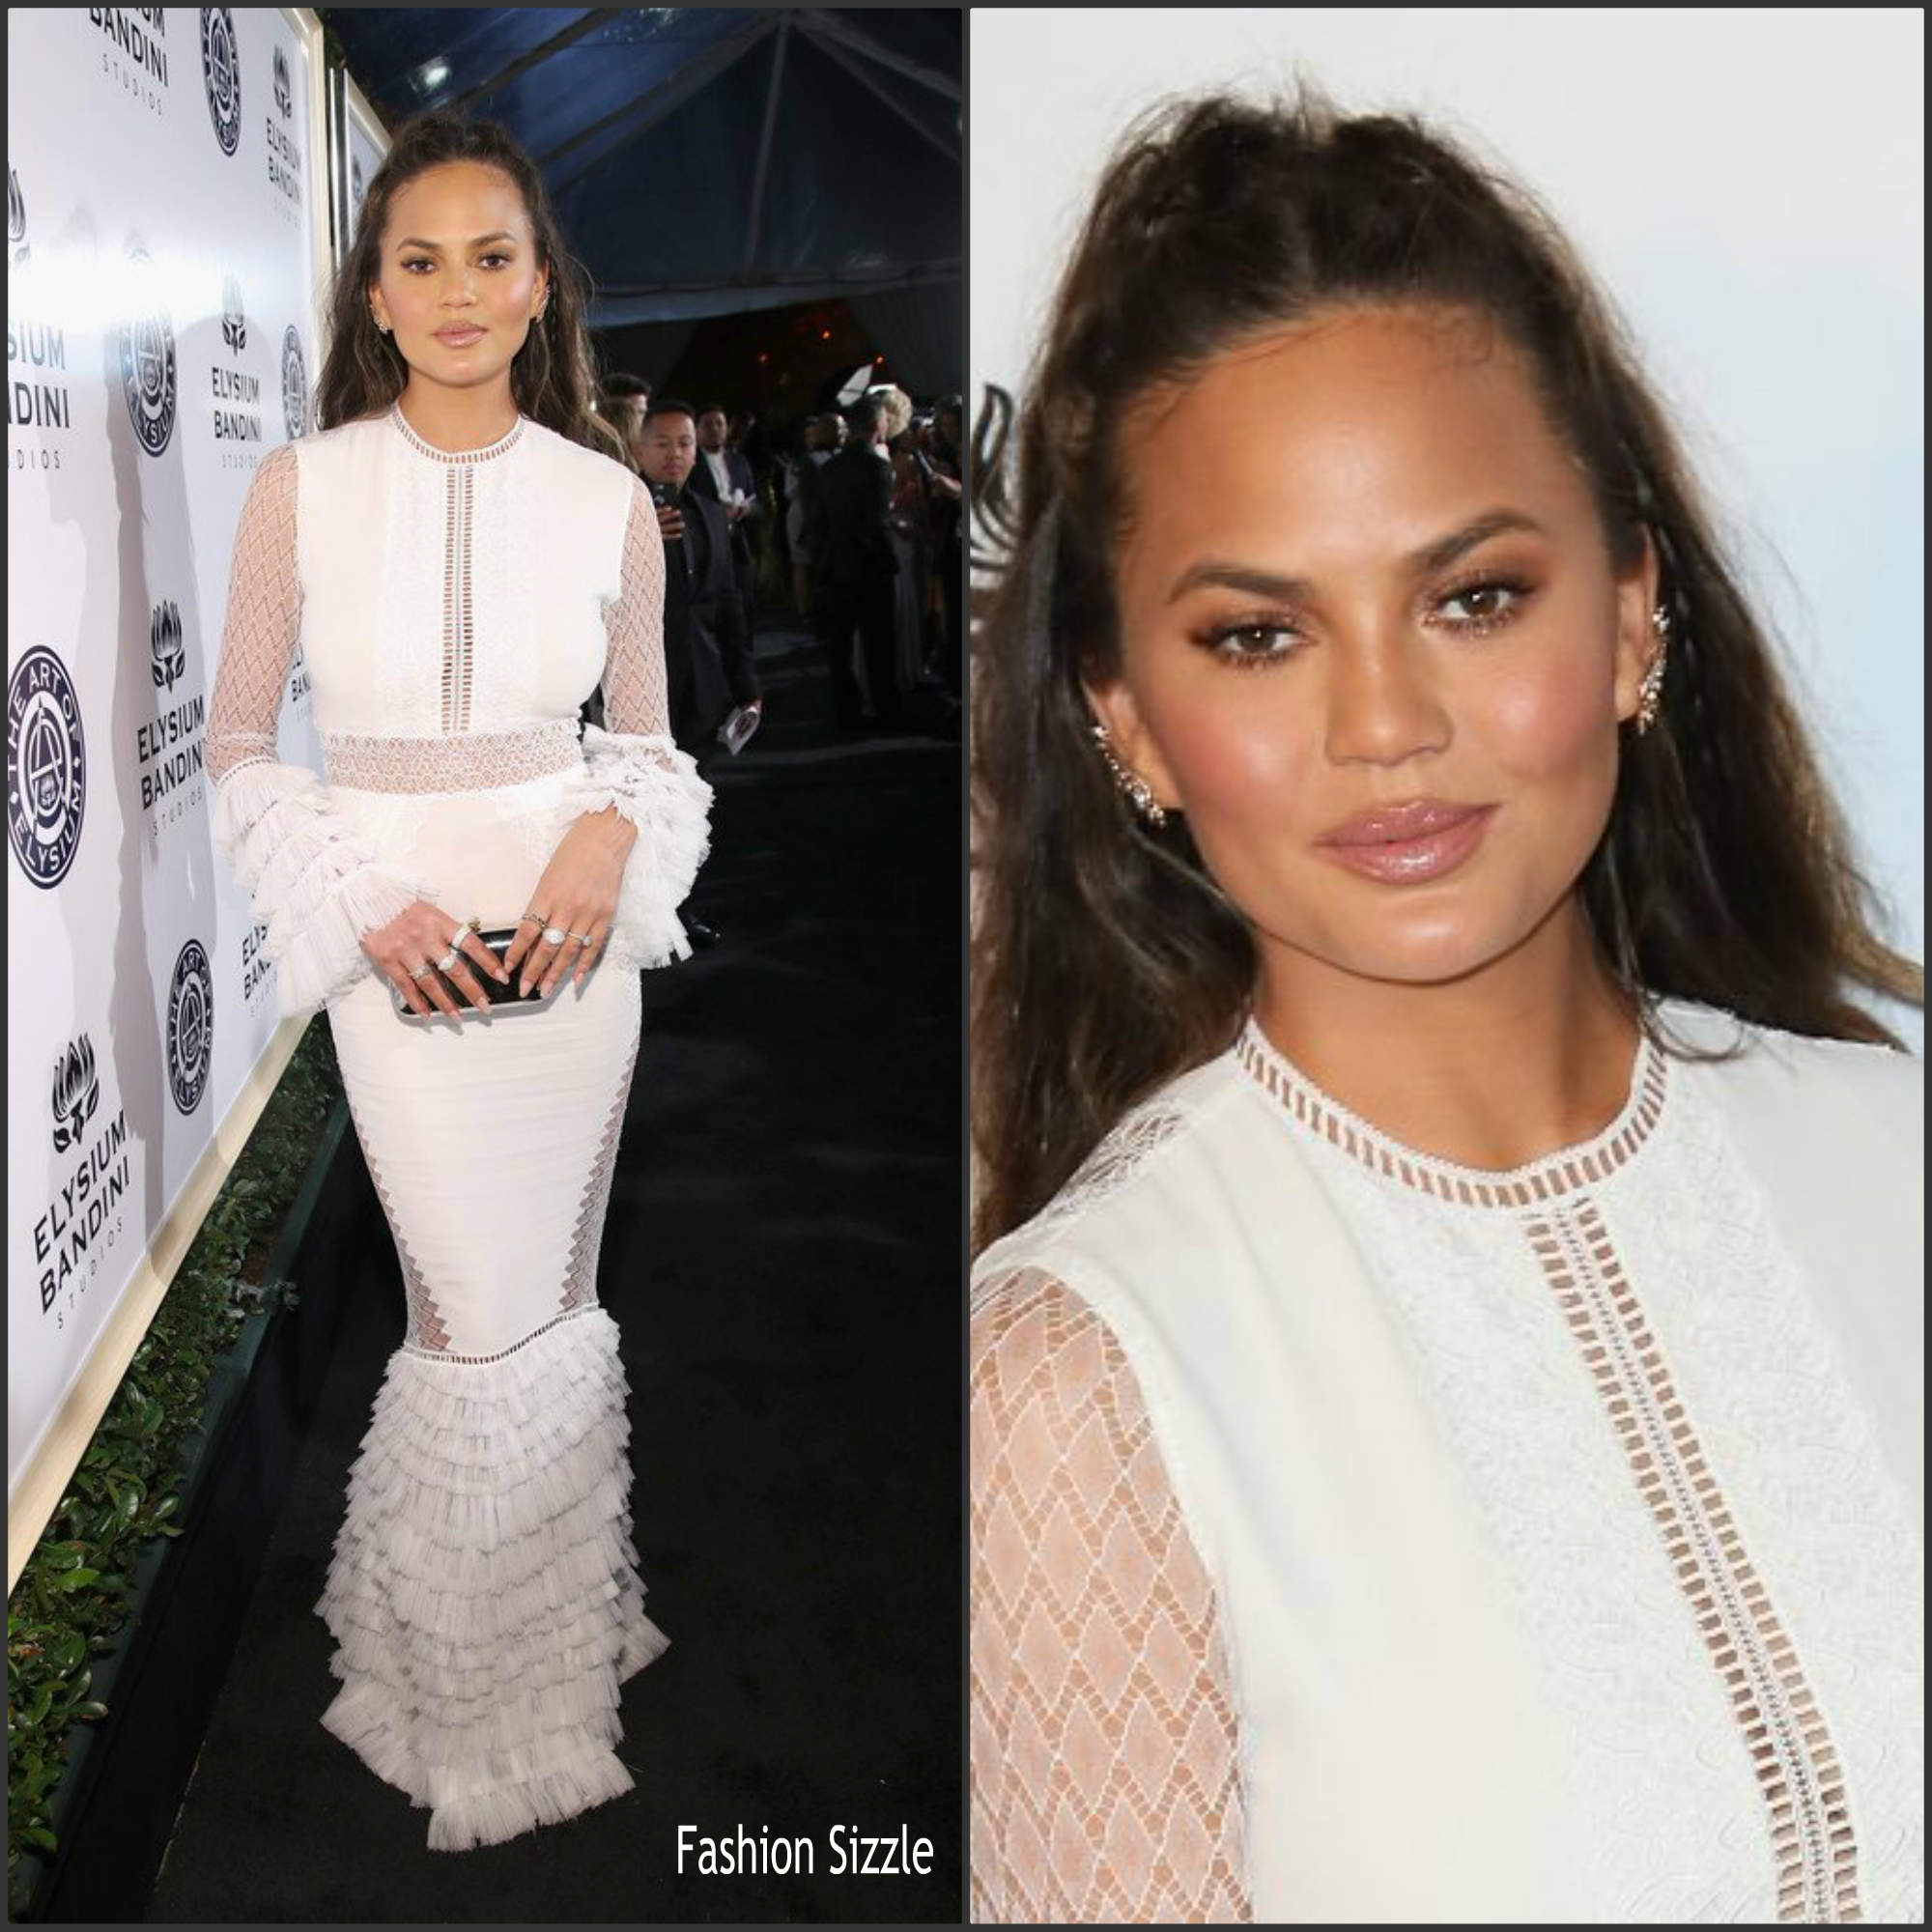 chrissy-teigen-in-jonathan-simkhai-at-the-2017-art-of-elysium-heaven-gala-in-la